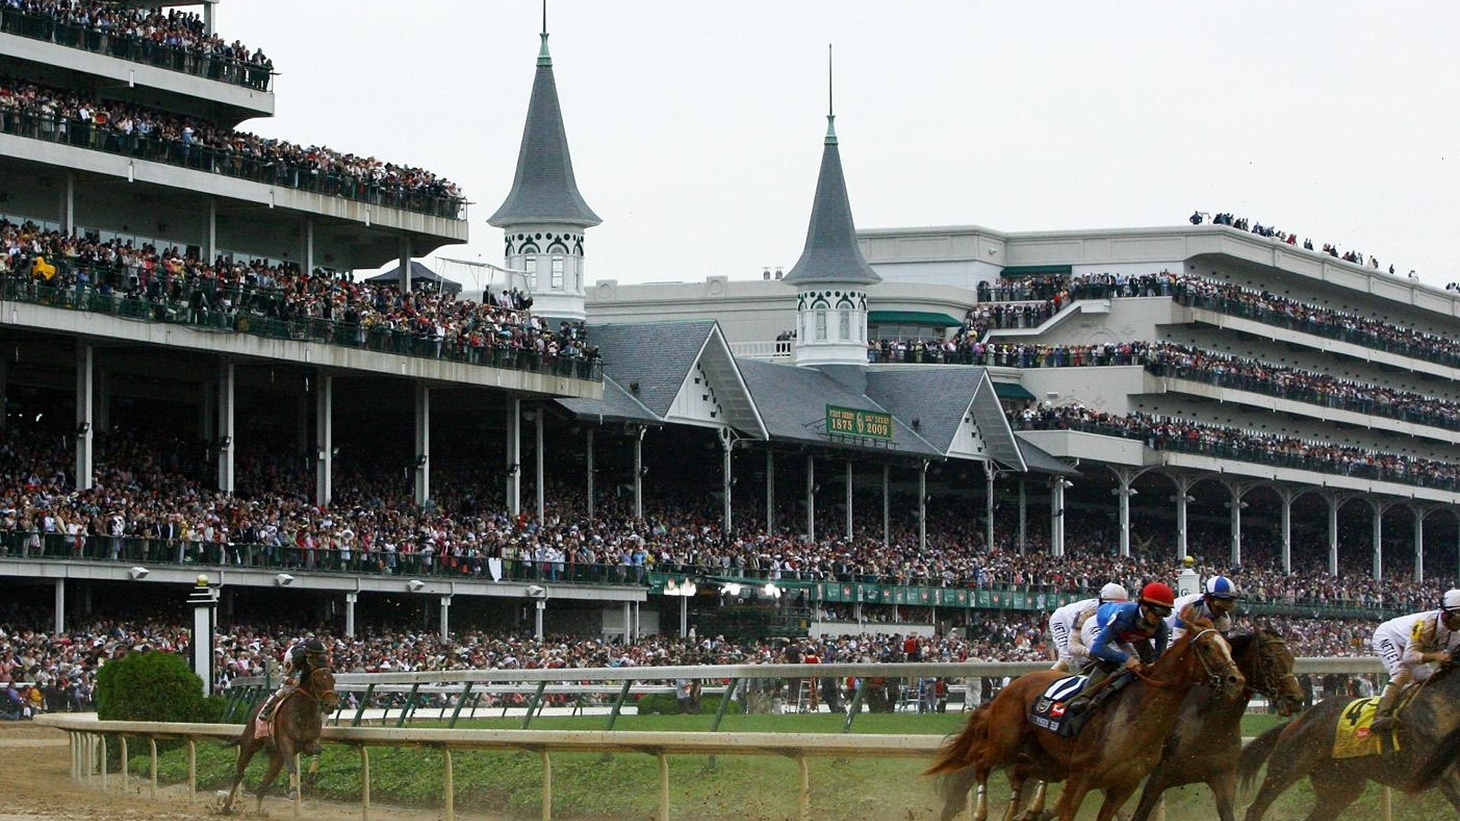 The second leg of thoroughbred racing's fabled Triple Crown goes off at Pimlico Race Track in Baltimore this Saturday and the Preakness is buzzing with jockey drama this week. The stirring 50-to-1 odds winner of the Kentucky Derby the first weekend of May, Mine That Bird, was deftly commandeered by jockey Calvin Borel. It sometimes happens, when a crowd of horses comes shoulder to shoulder to the wire and one shows the heart to find that fifth gear and nose out the rest, that we give all the credit to the horse. And make no mistake, the little gelding Mine That Bird is a special race horse. But reviewing the Derby from start to finish convinces you that Borel and his colt were equally talented that day...